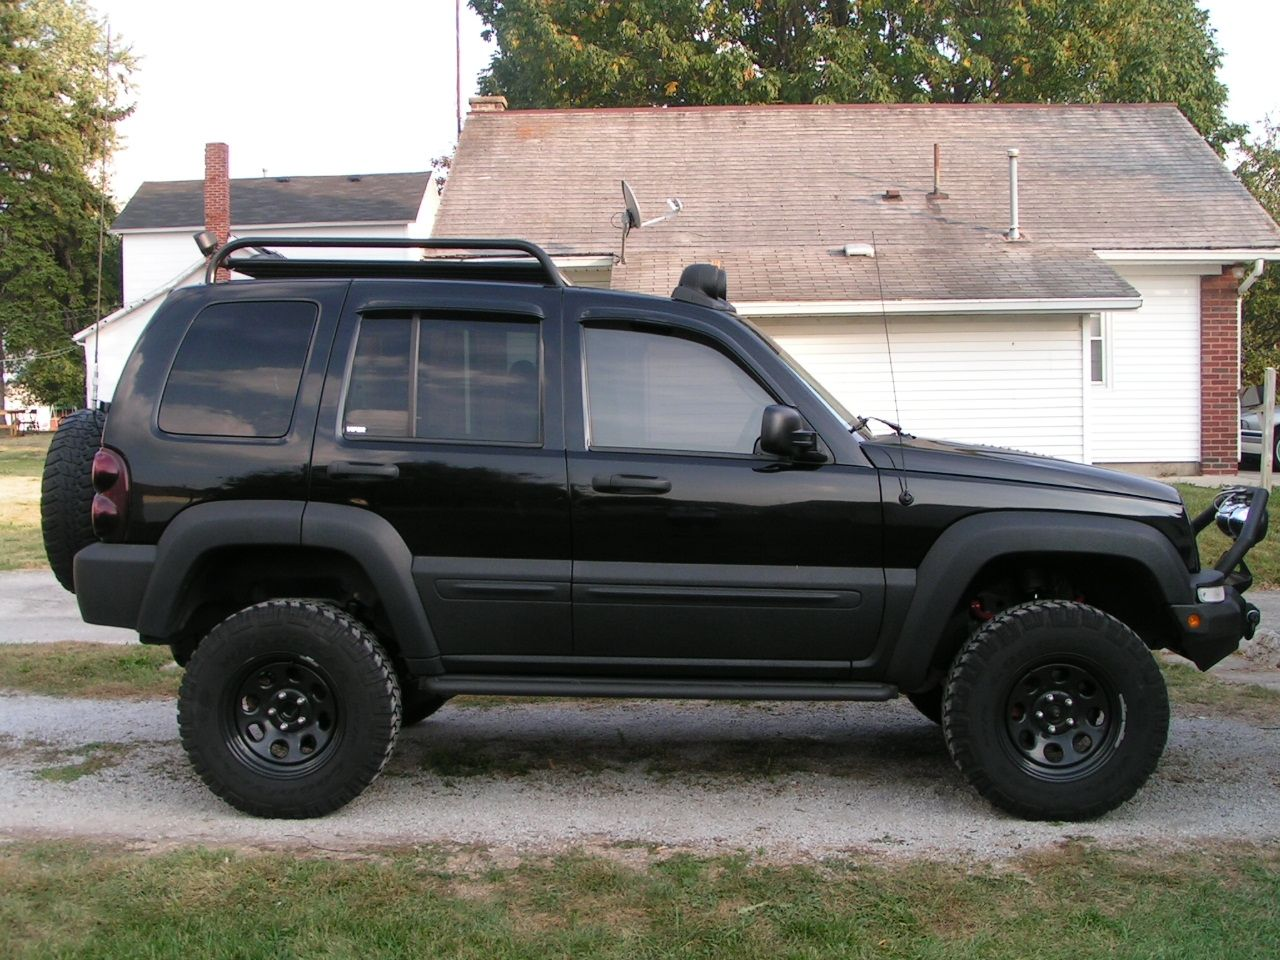 4 Lift Roof Rackhub Caps Removed Stinger Lights Winchmount Side Decals Removed Jeep Liberty Badass Jeep Lifted Jeep